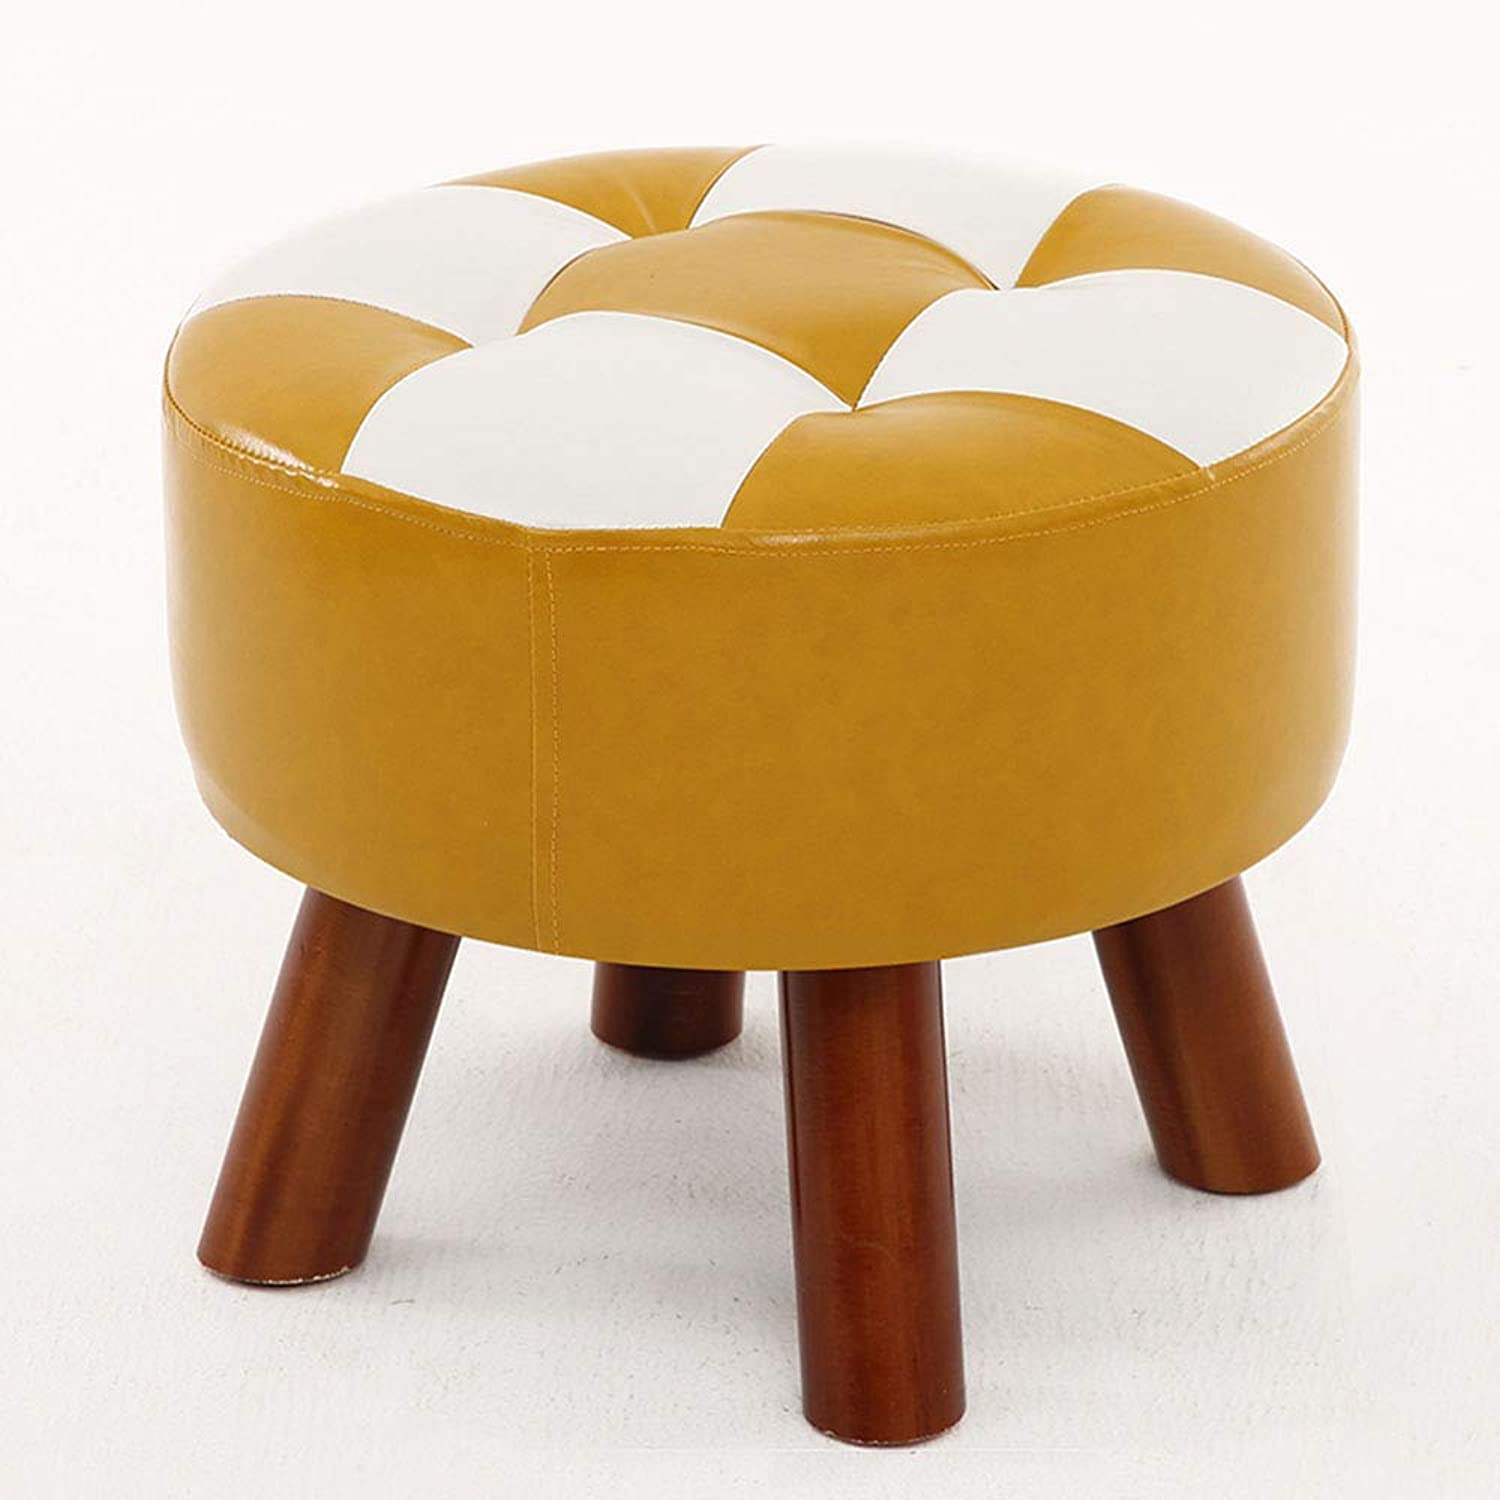 ZXQZ Stool Solid Wood Imitation Leather Footstool 40x32cm Change shoes Sofa Stool (color   A)